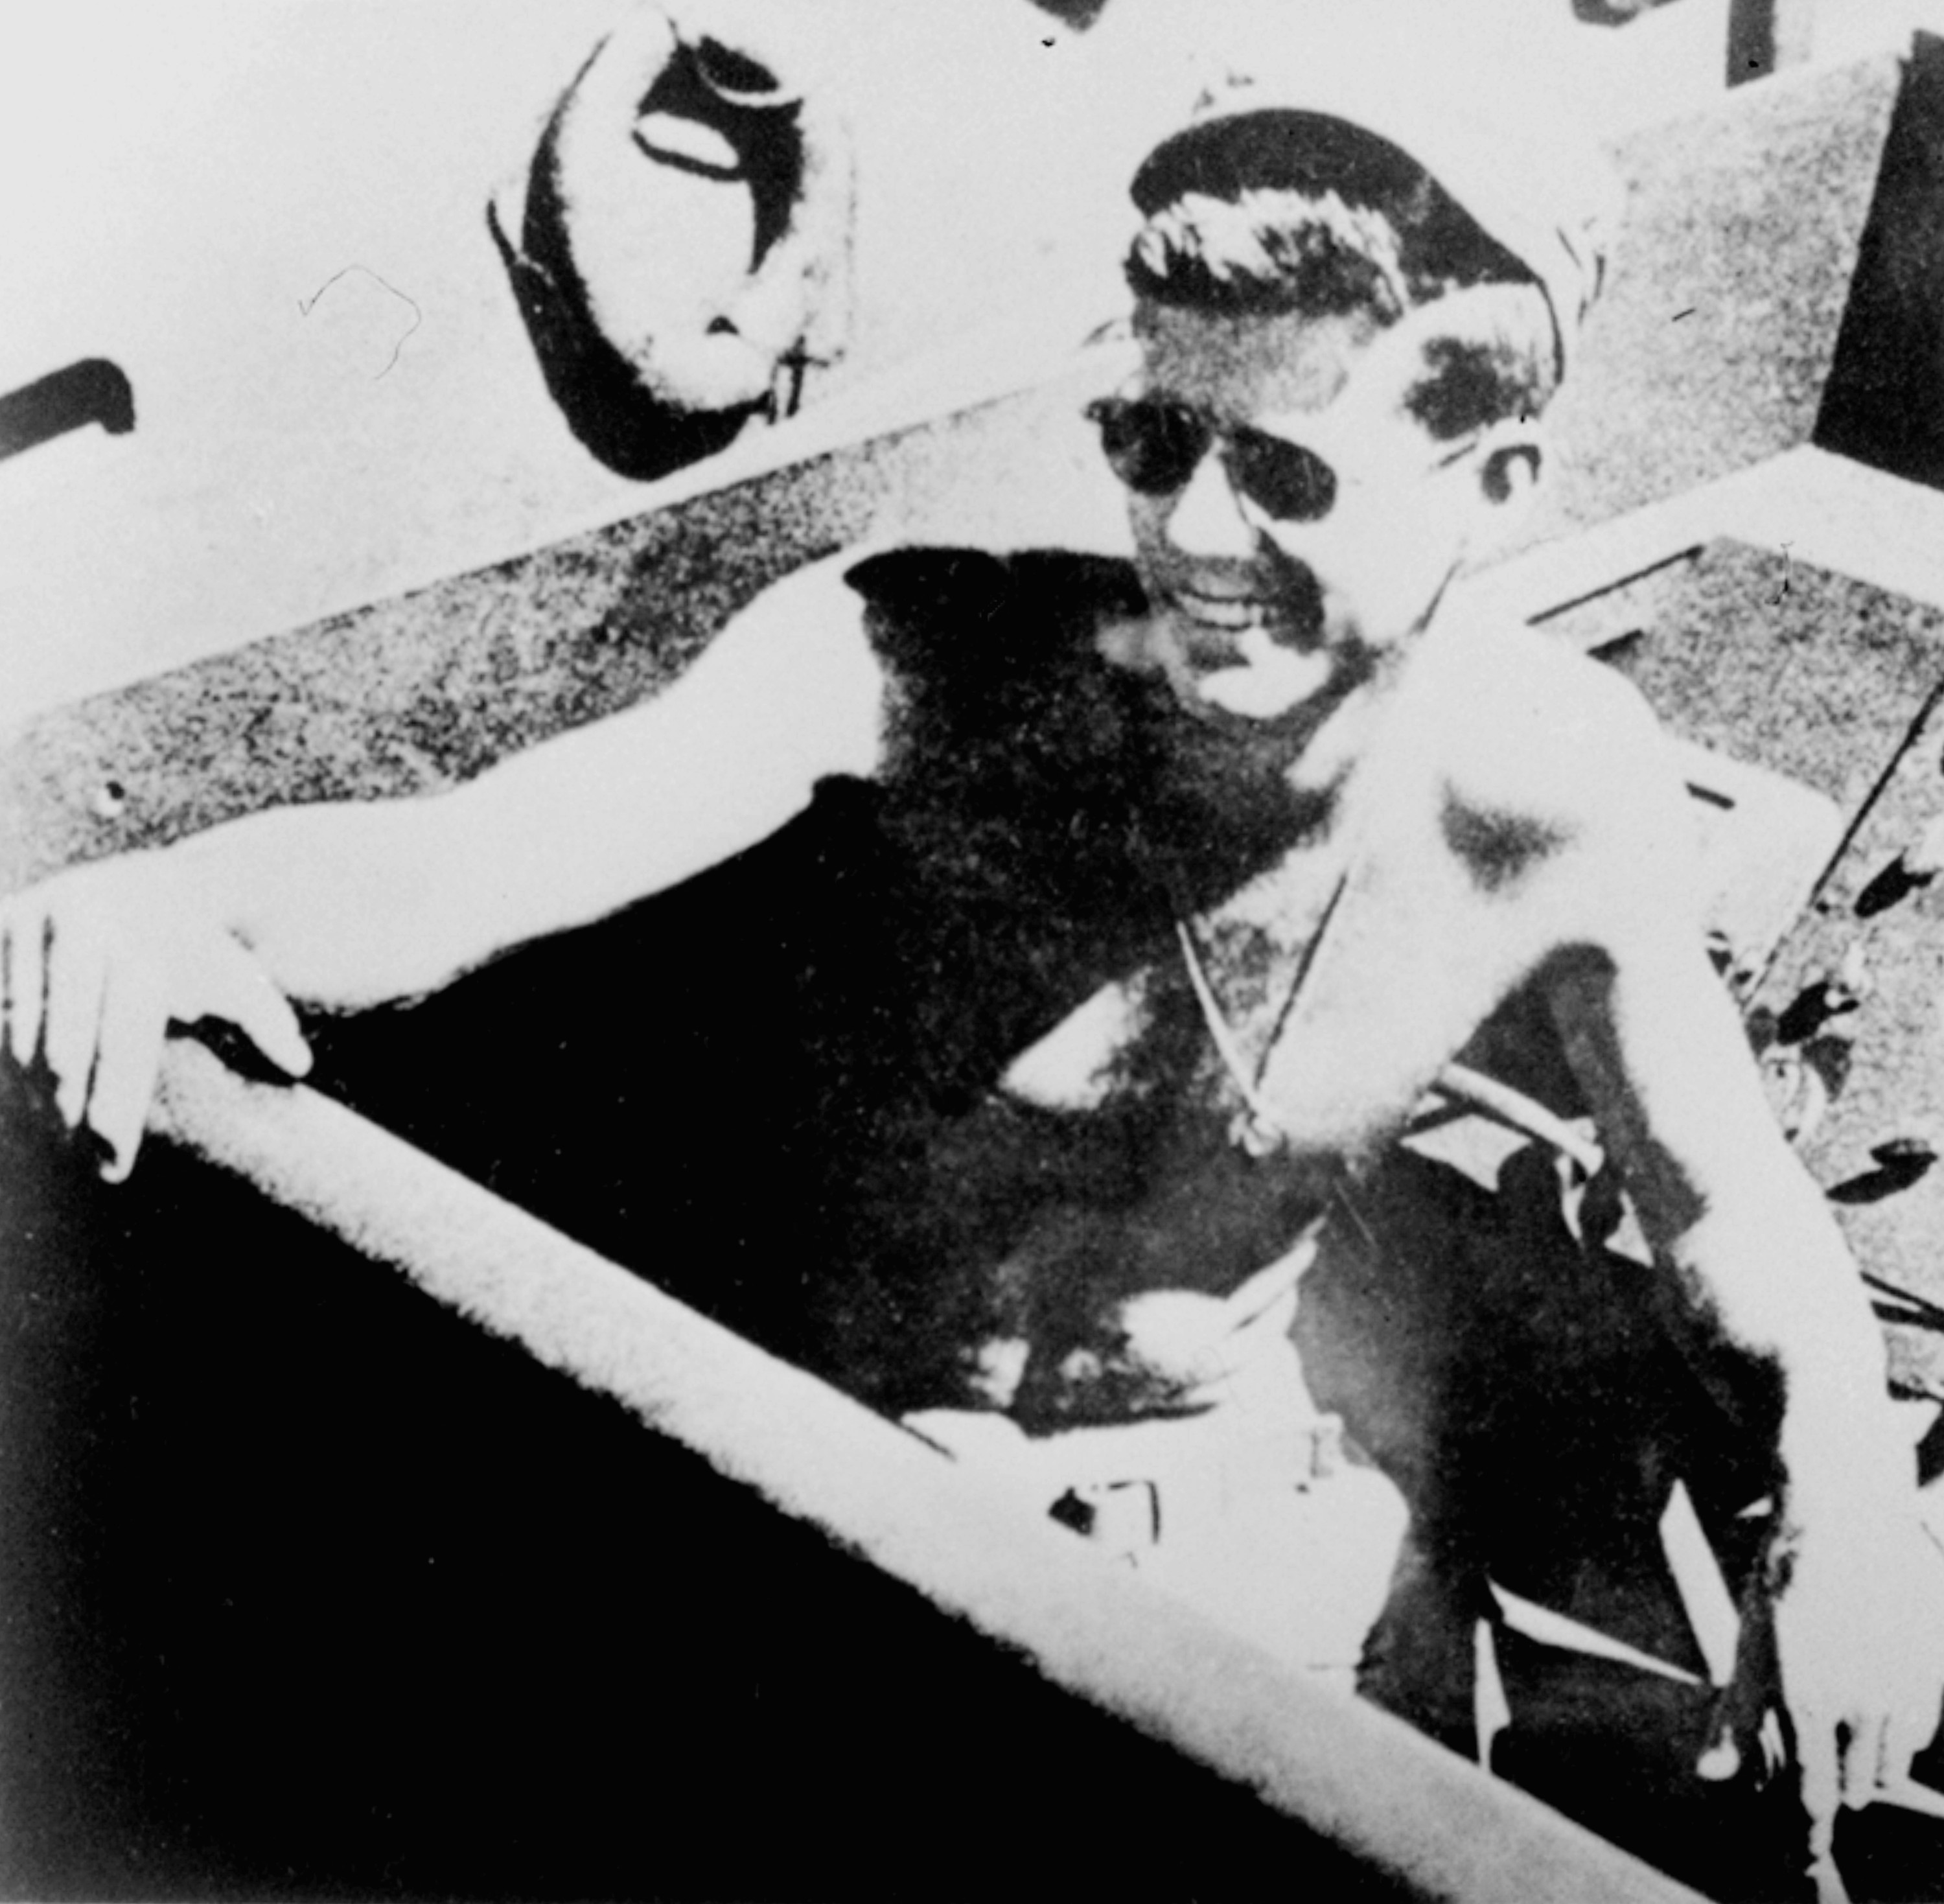 <div class='meta'><div class='origin-logo' data-origin='none'></div><span class='caption-text' data-credit='ASSOCIATED PRESS'>Lt. John F. Kennedy, skipper of PT boat 109, is shown relaxing in the South Pacific, 1943.</span></div>